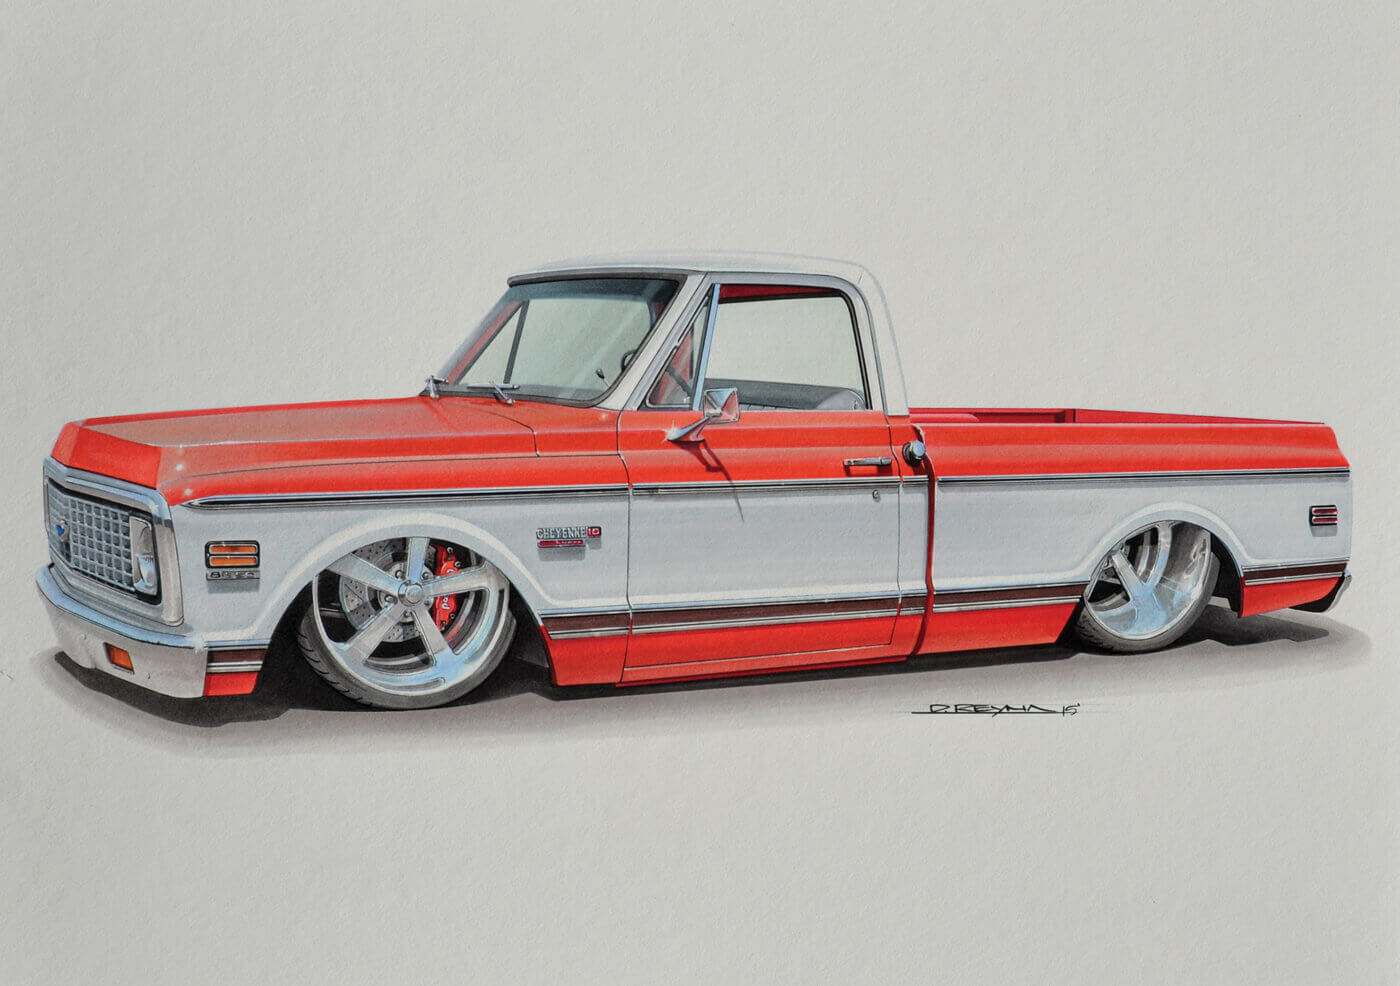 the inspiration for reyna brothers builds starts at the drafting table. the renderings are created by Daniel's steady hands. the orange and white '69 c10 is Daniel's personal project, and the chassis is currently being built at Nfamous air suspension.